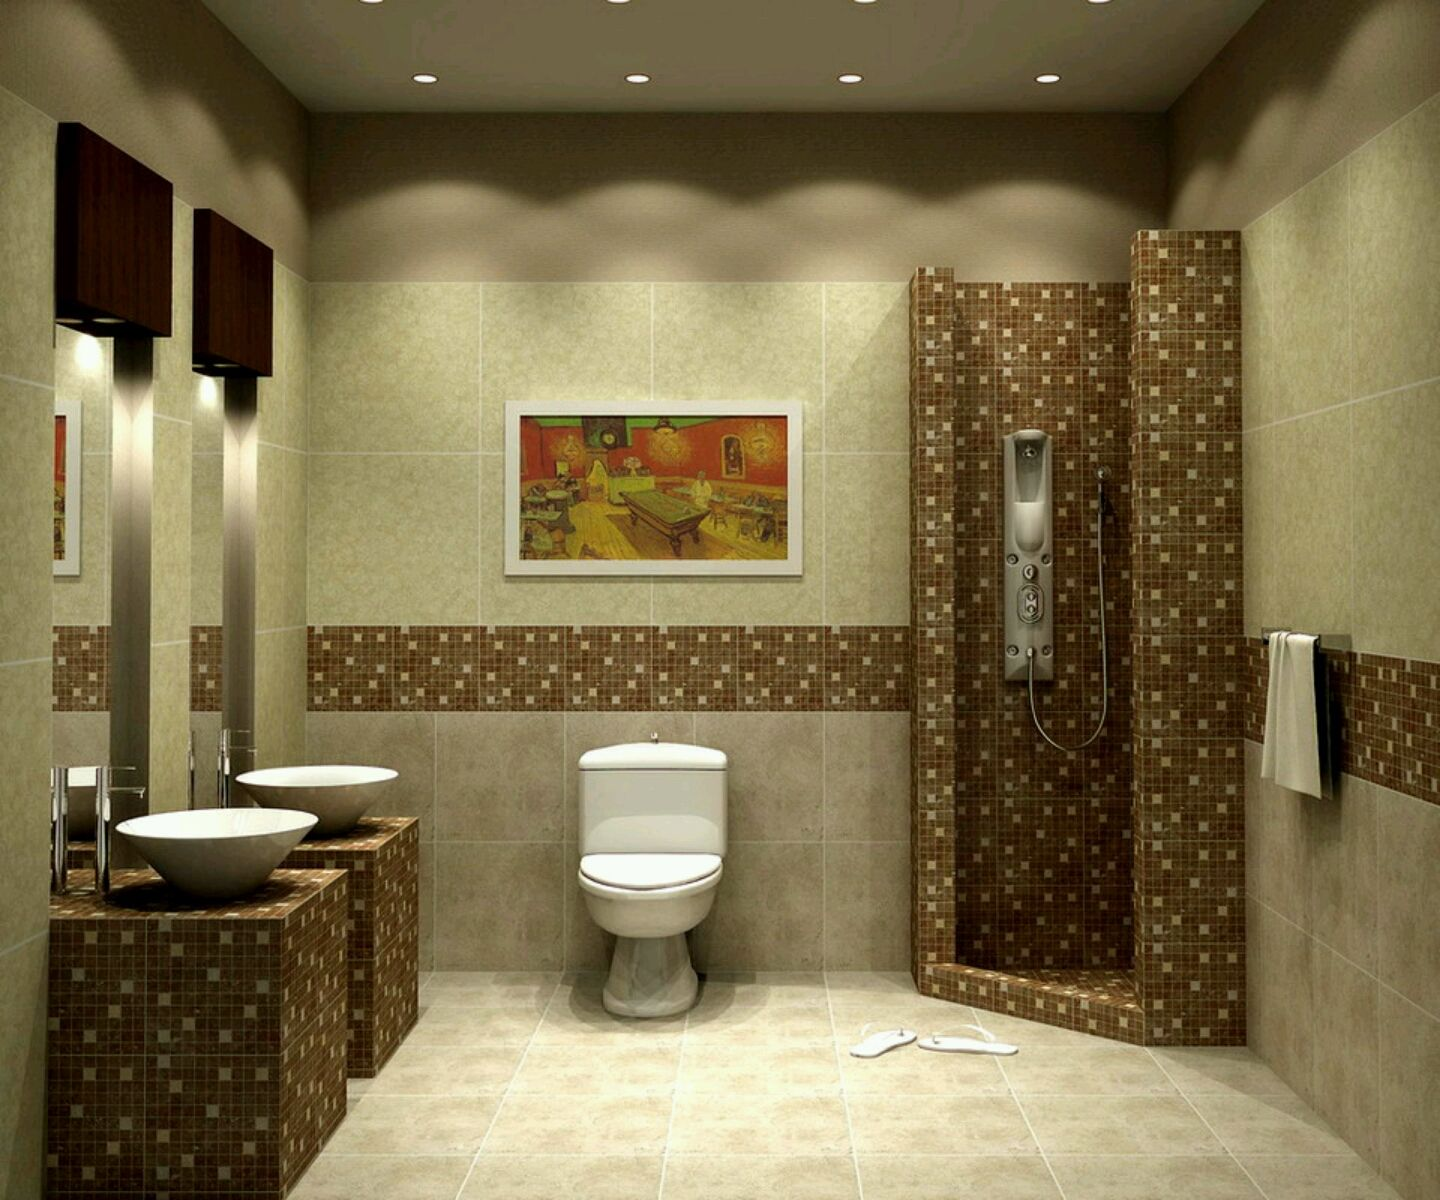 Home decorating ideas bathroom - New Home Designs Latest Luxury Bathrooms Designs Ideas For Elegant Home Bathroom Design Ideas